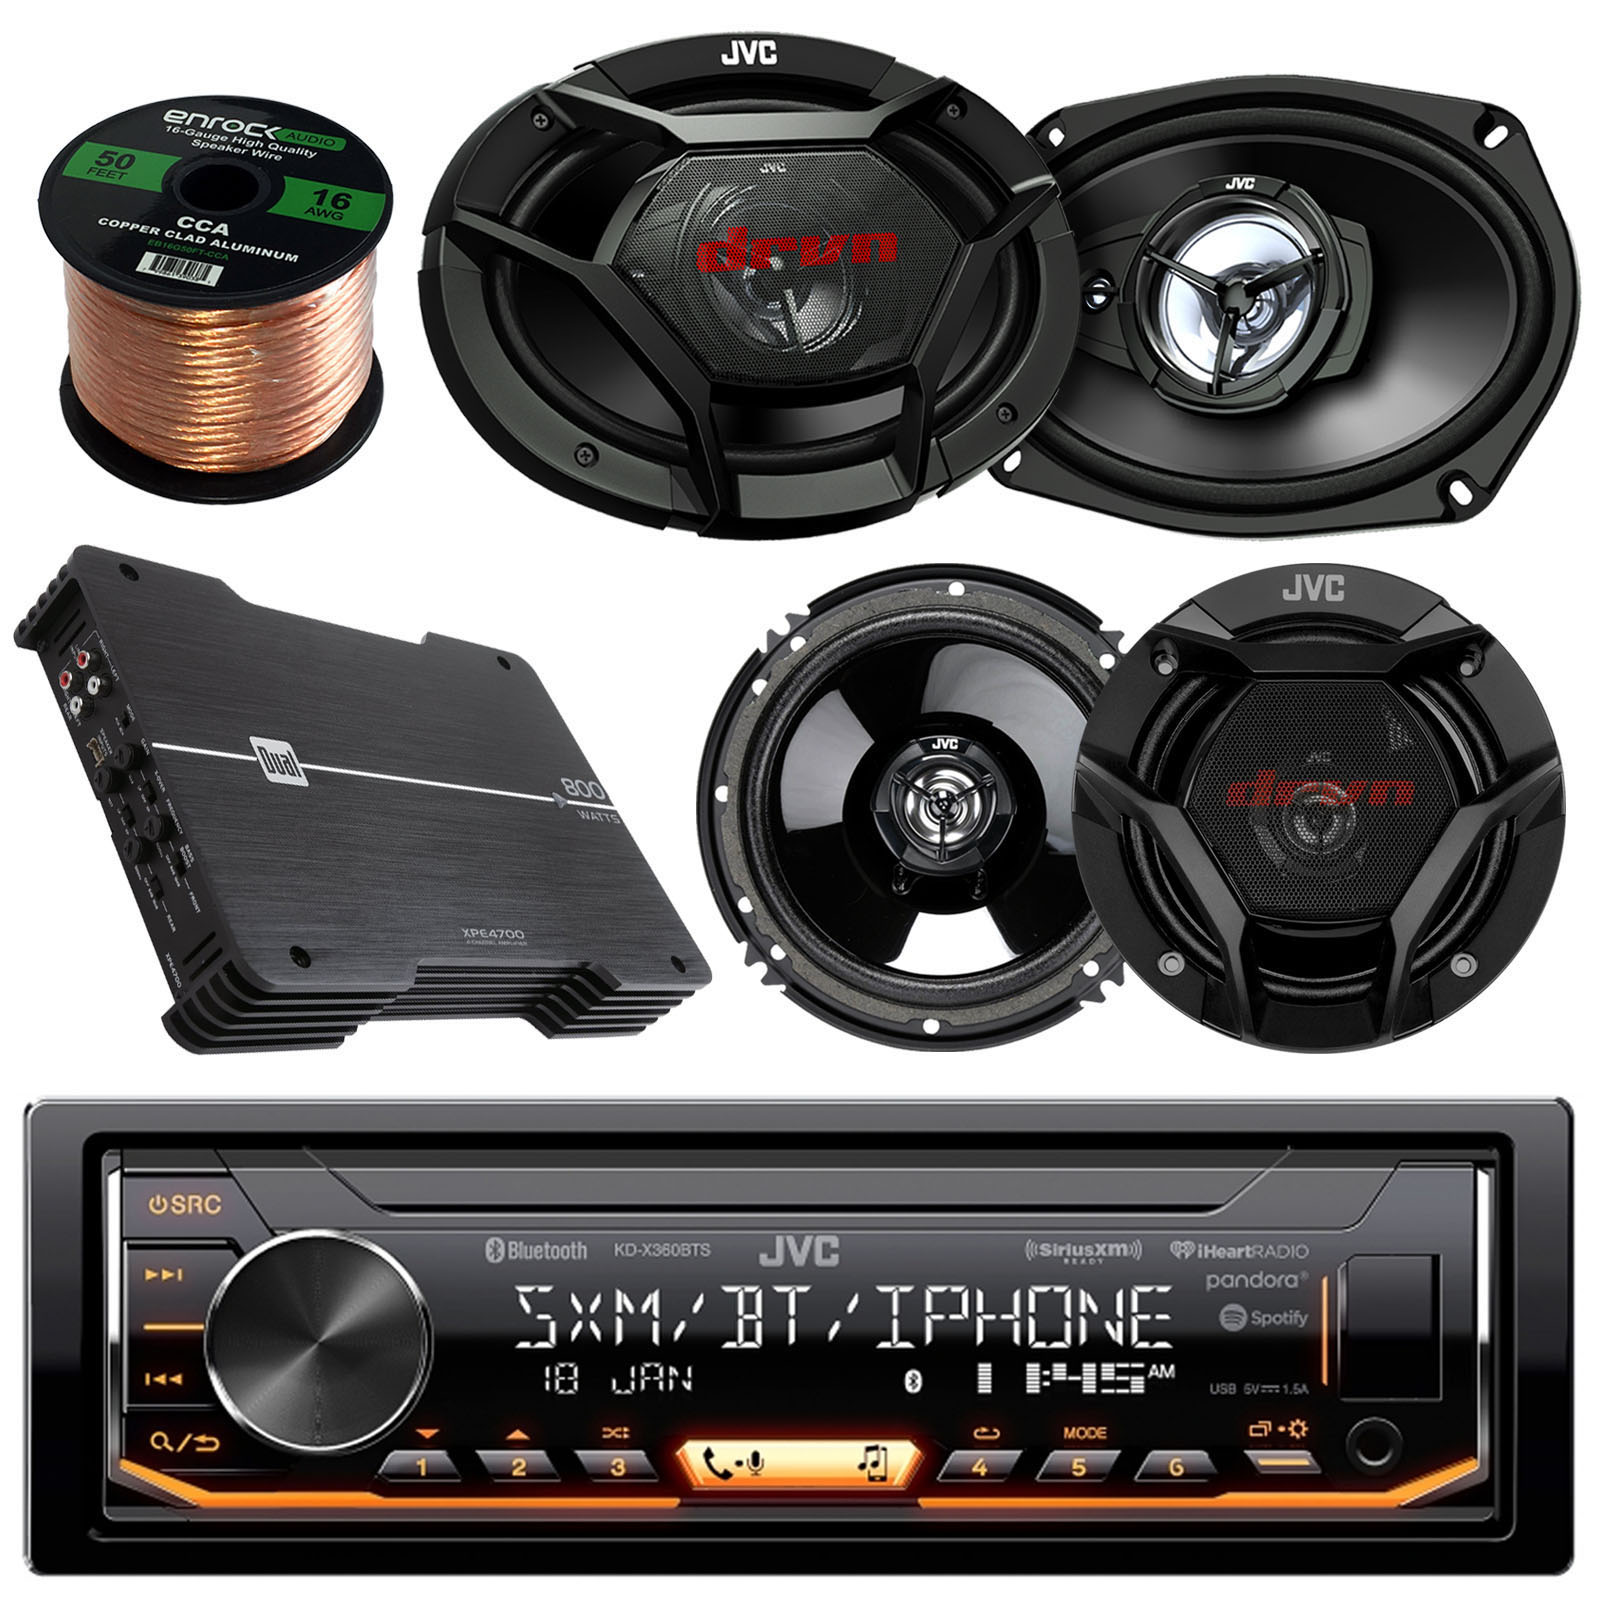 "JVC KD-X360BTS AM/FM USB AUX Car Stereo Receiver Bundle Combo With 2x JVC CSDR6940 6x9"" 3-Way Vehicle Coaxial Speakers + 2x CSDR620 6.5"" Audio Speaker + Dual XPE4700 800w Amplifier + 50Ft 16g Wire"